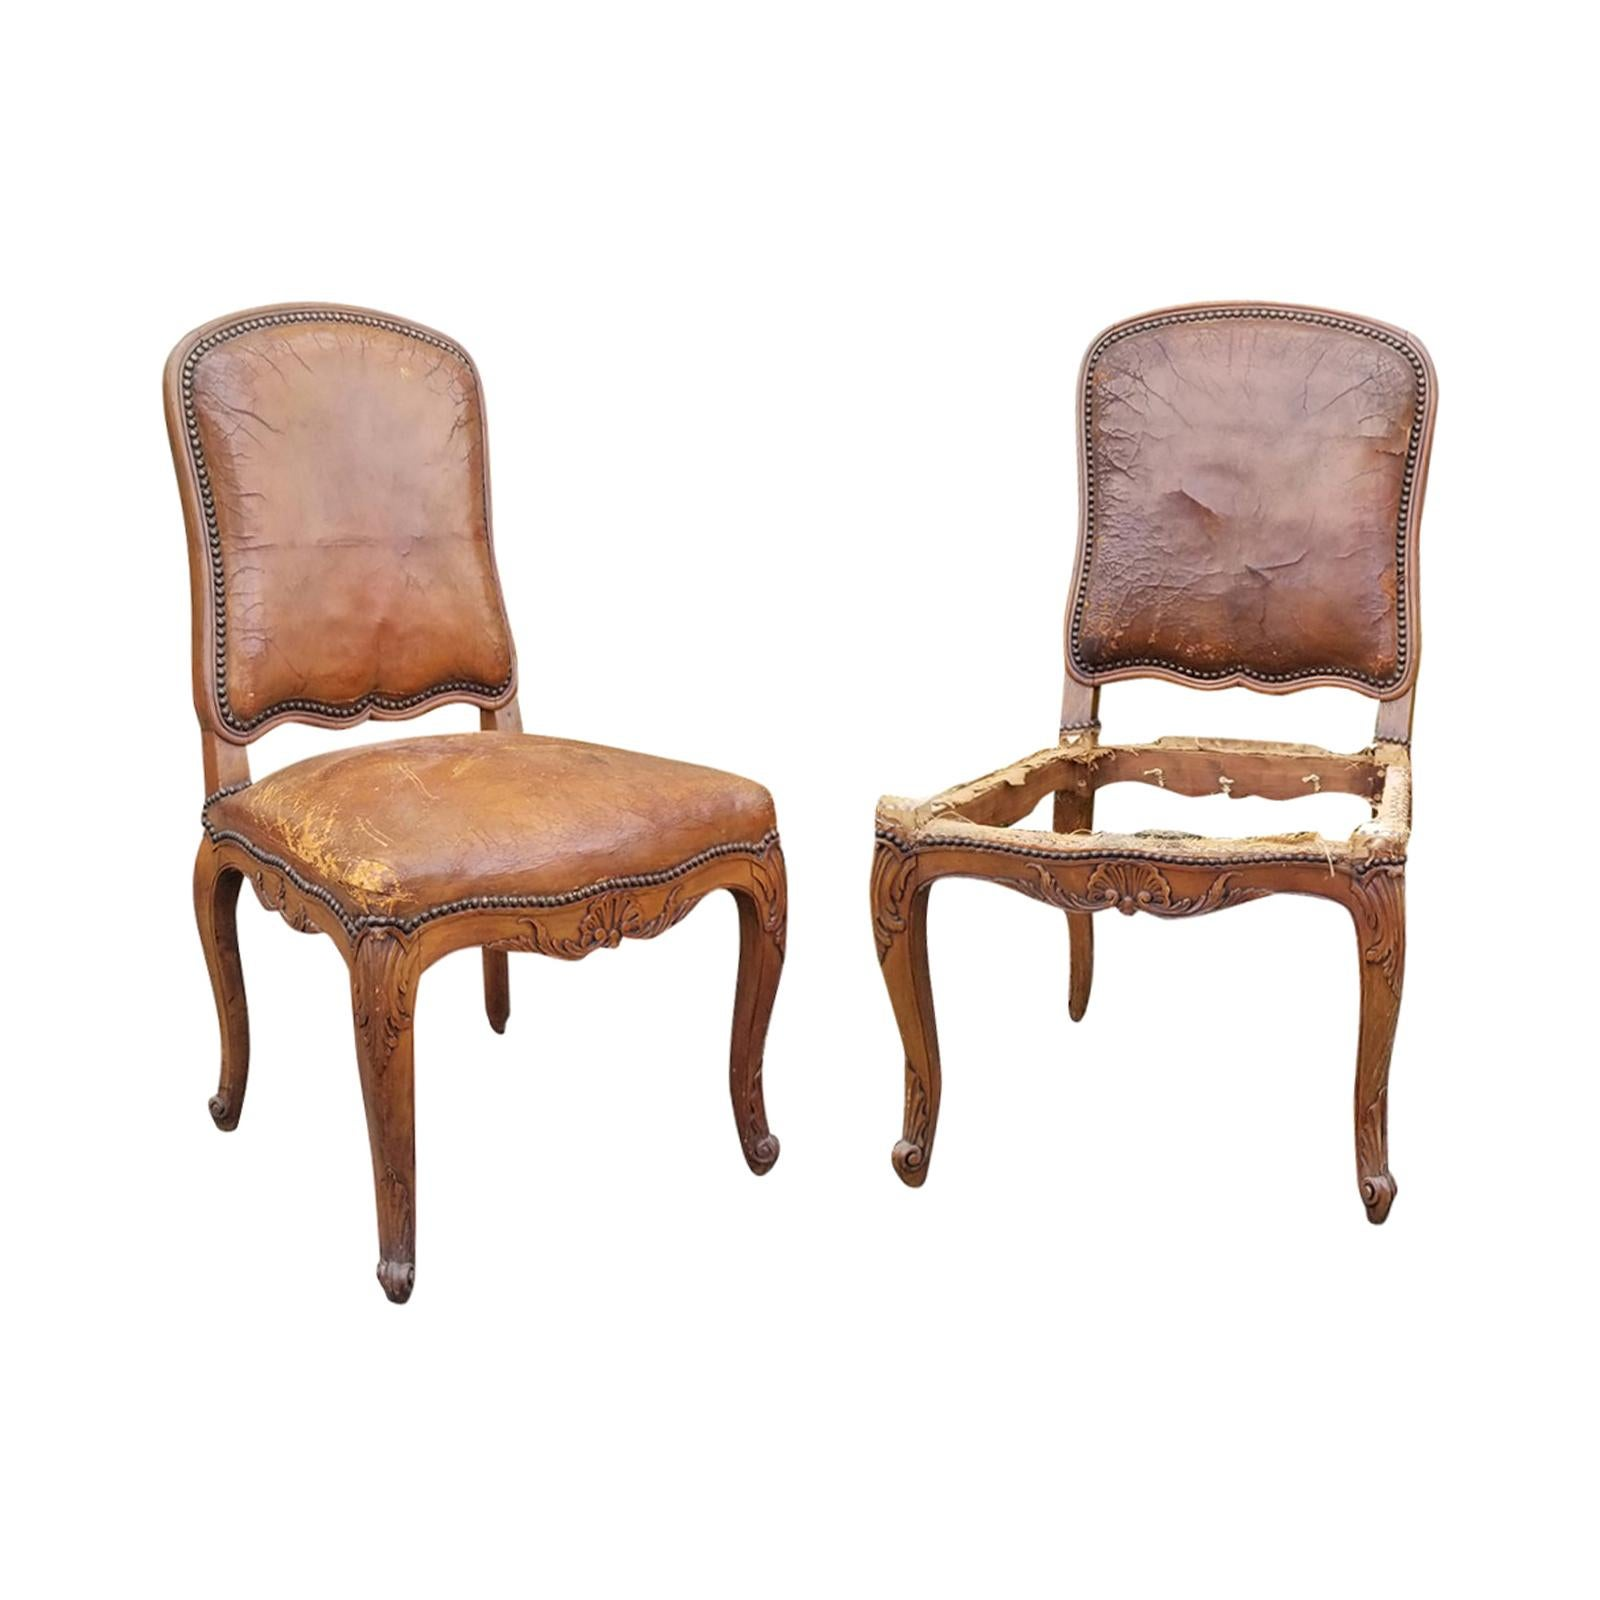 Pair of 18th-19th Century Provincial Louis XV Fruitwood Side Chairs